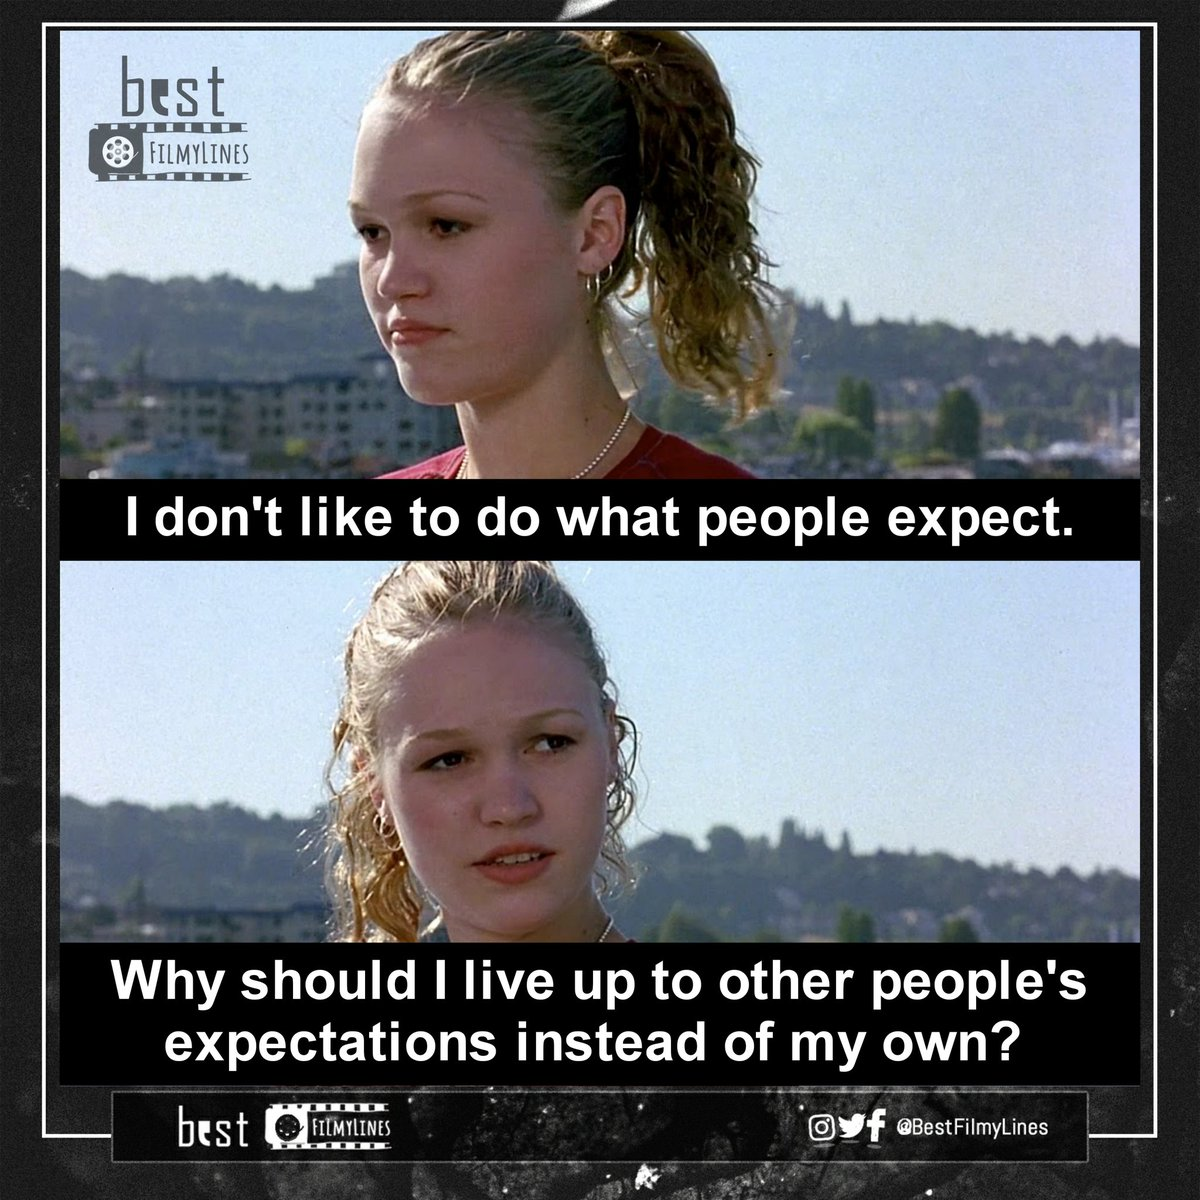 - 10 Things I Hate About You (1999) Director: Gil Junger  #hollywood #hollywoodmovie #hollywoodmovies #english #cinema #movie #film #dialogue #dialogues #quote #quotes #webseries #tvseries #rvcjinsta #bestfilmylines #10thingsihateaboutyou #heathledger #inspiringquotes #motivationpic.twitter.com/XToa08H9PH